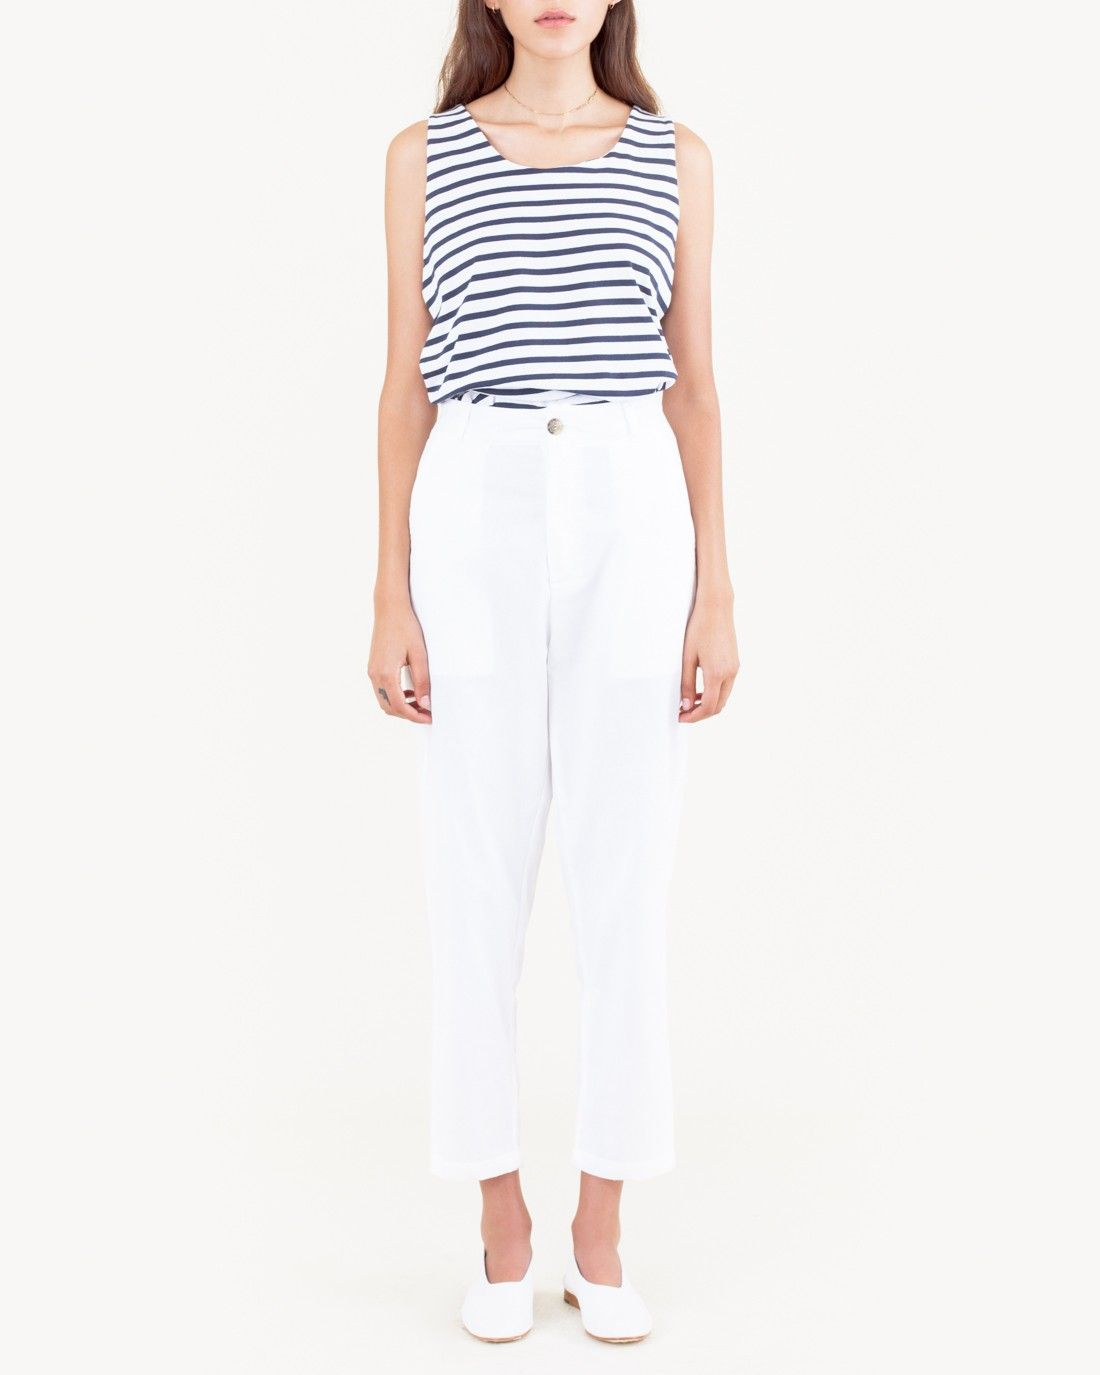 Form Pant in White Chambray by SMOCK.